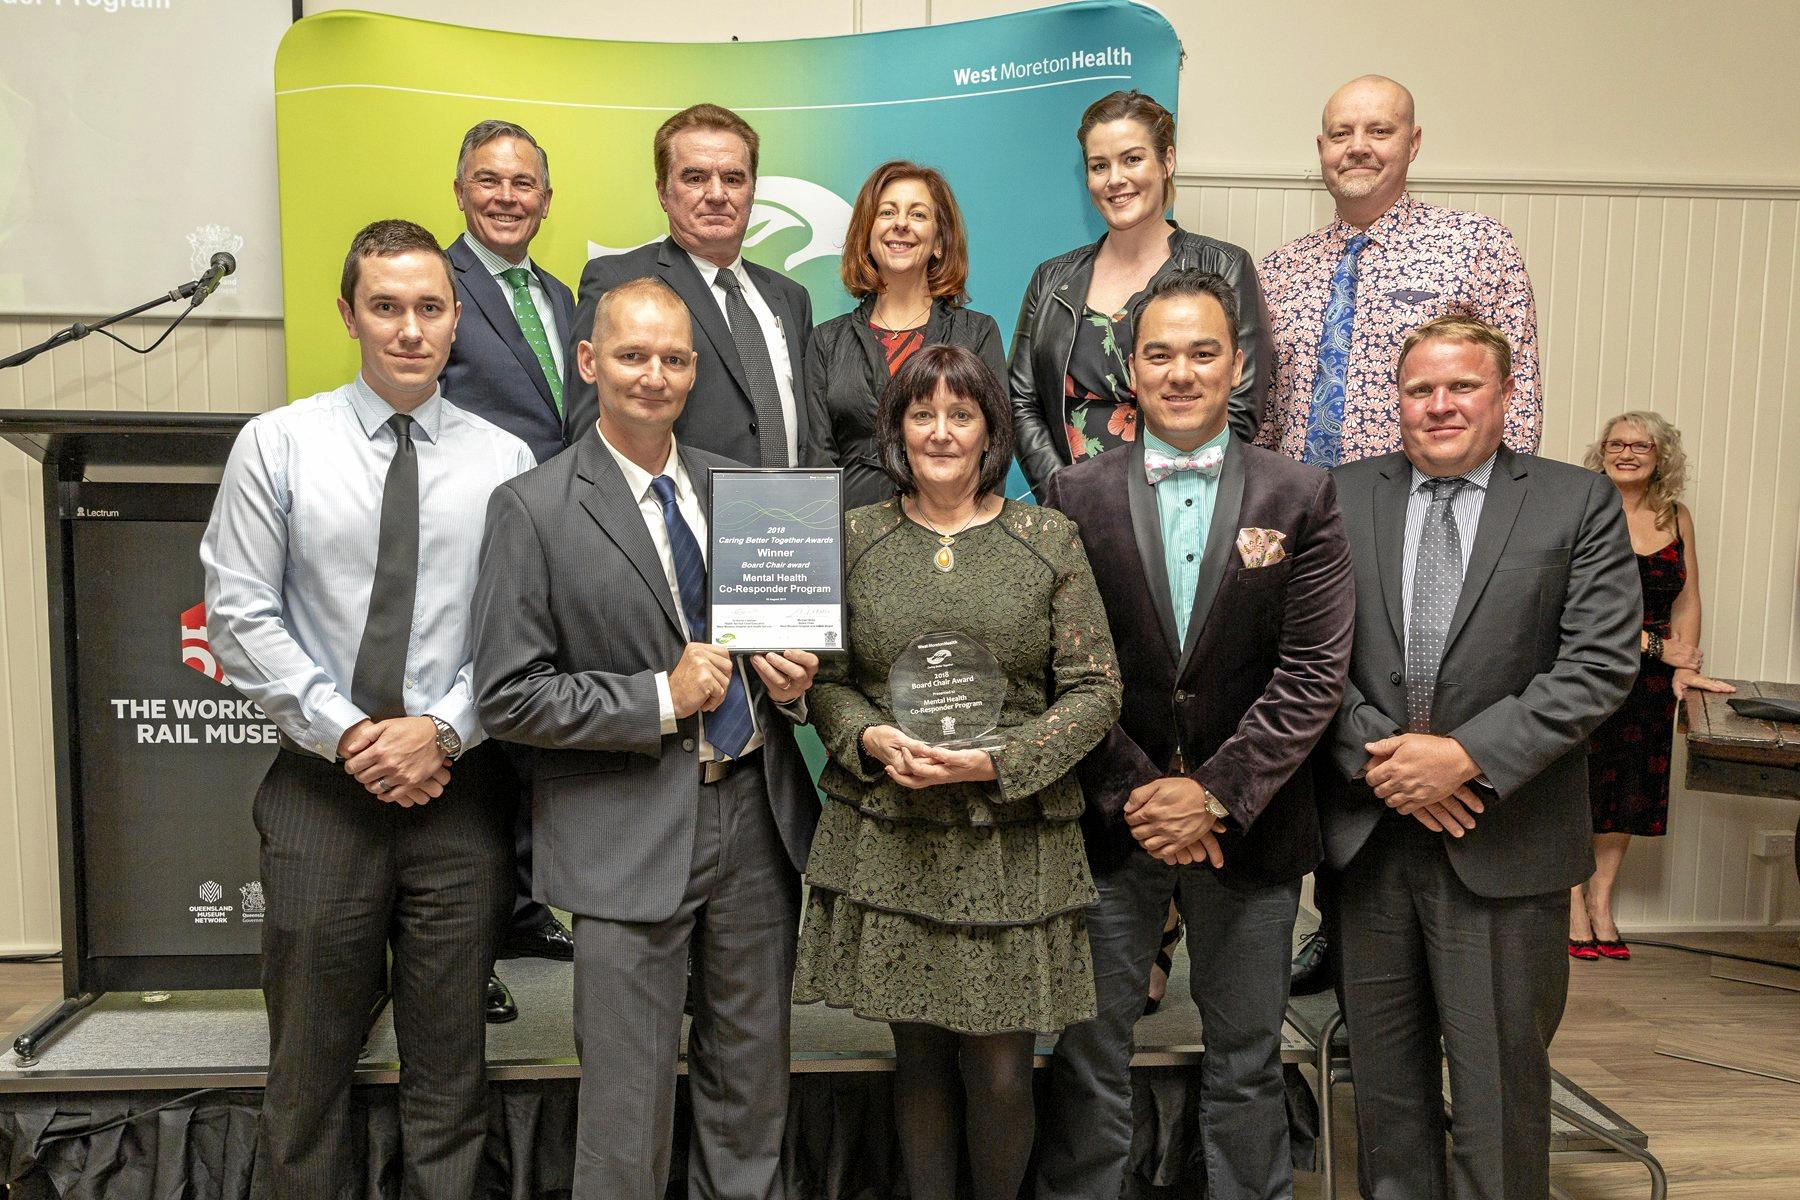 Mental health team work earns top gong at awards